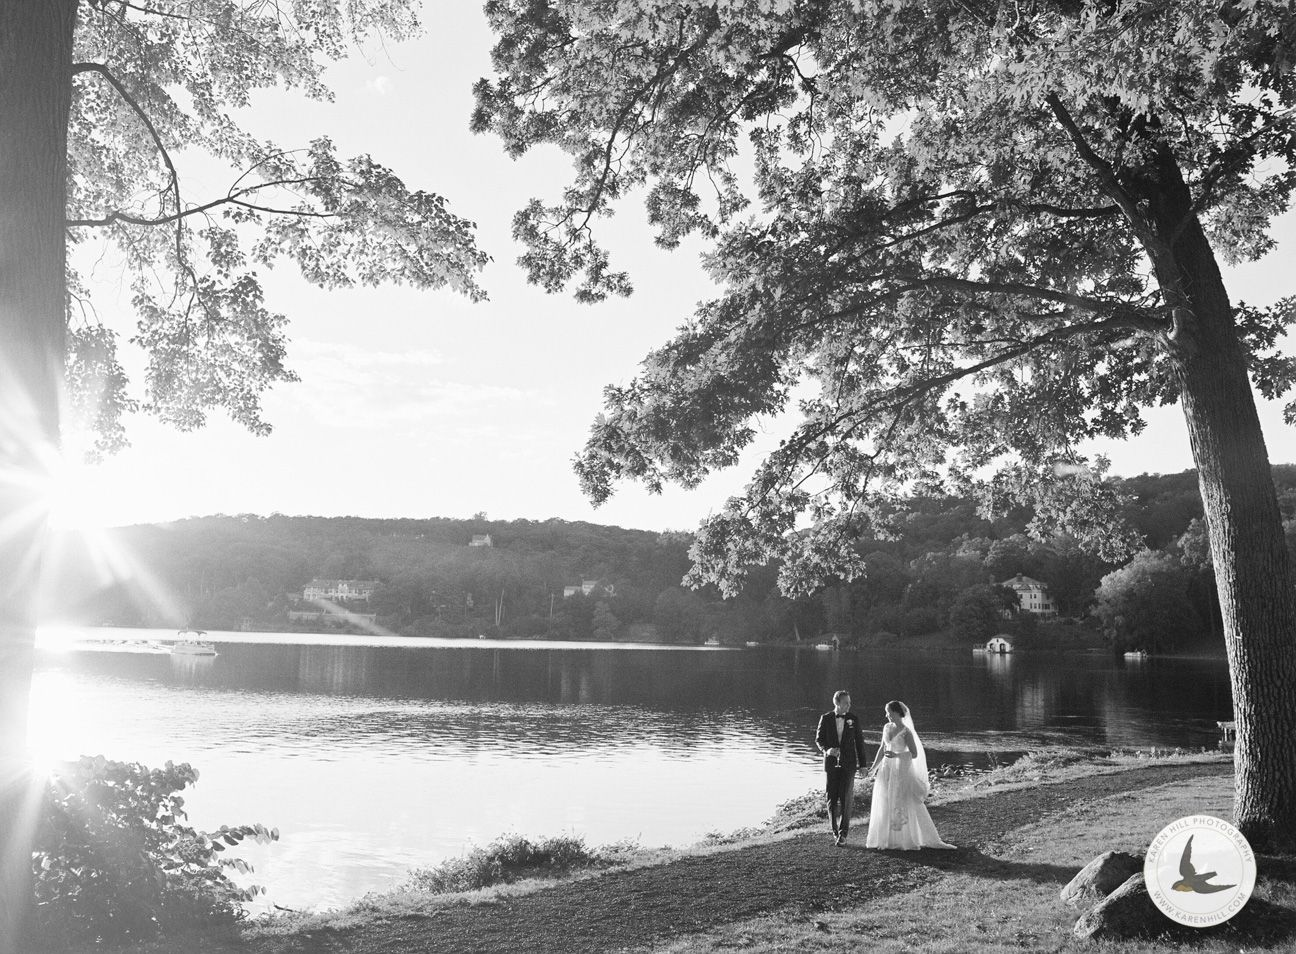 Bride and groom walking by lake, by New York Wedding Photographer Karen Hill